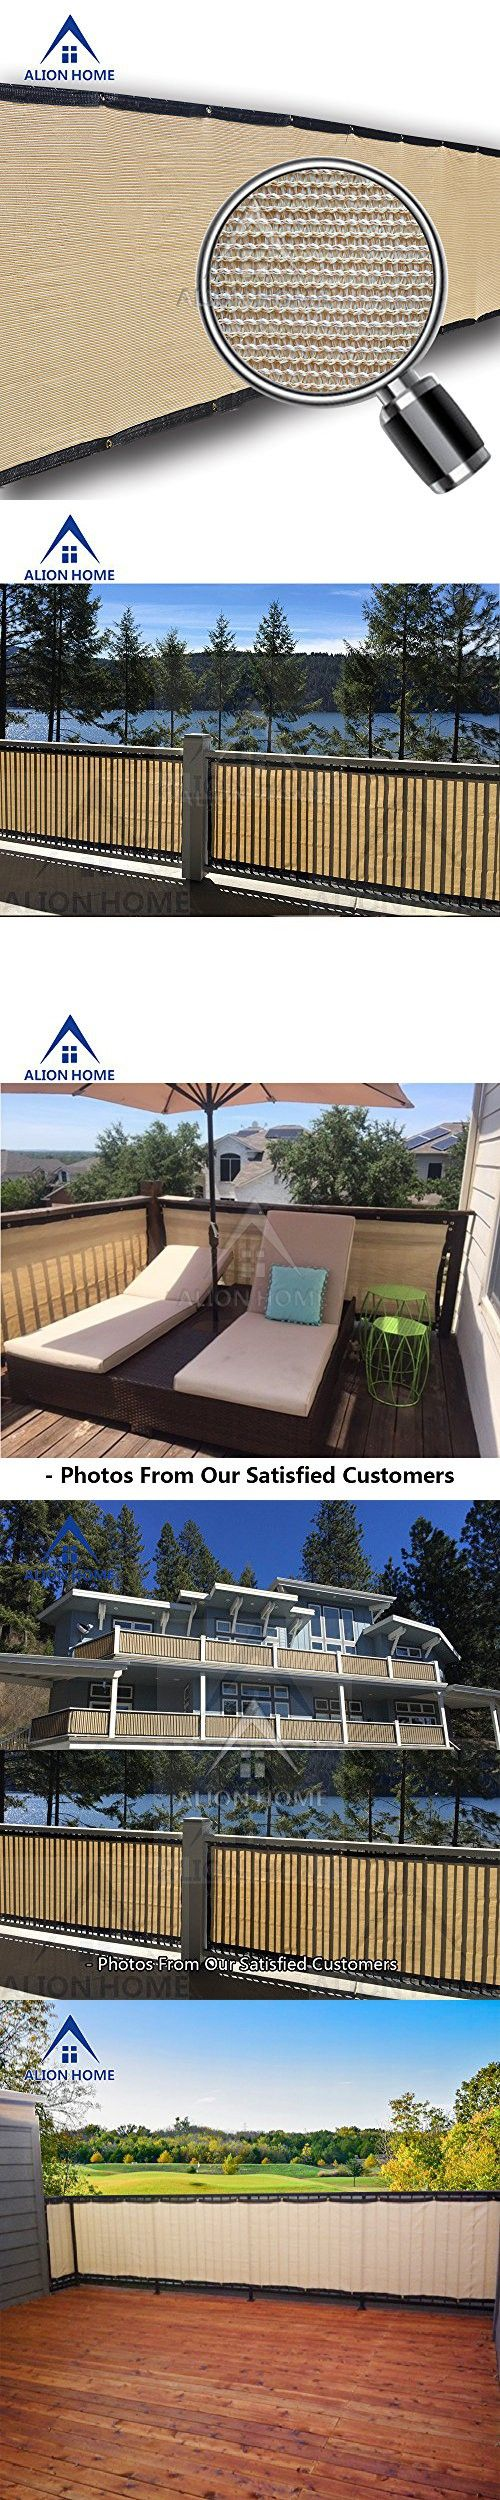 Alion Home Elegant Privacy Screen For Backyard Deck, Patio, Balcony ...